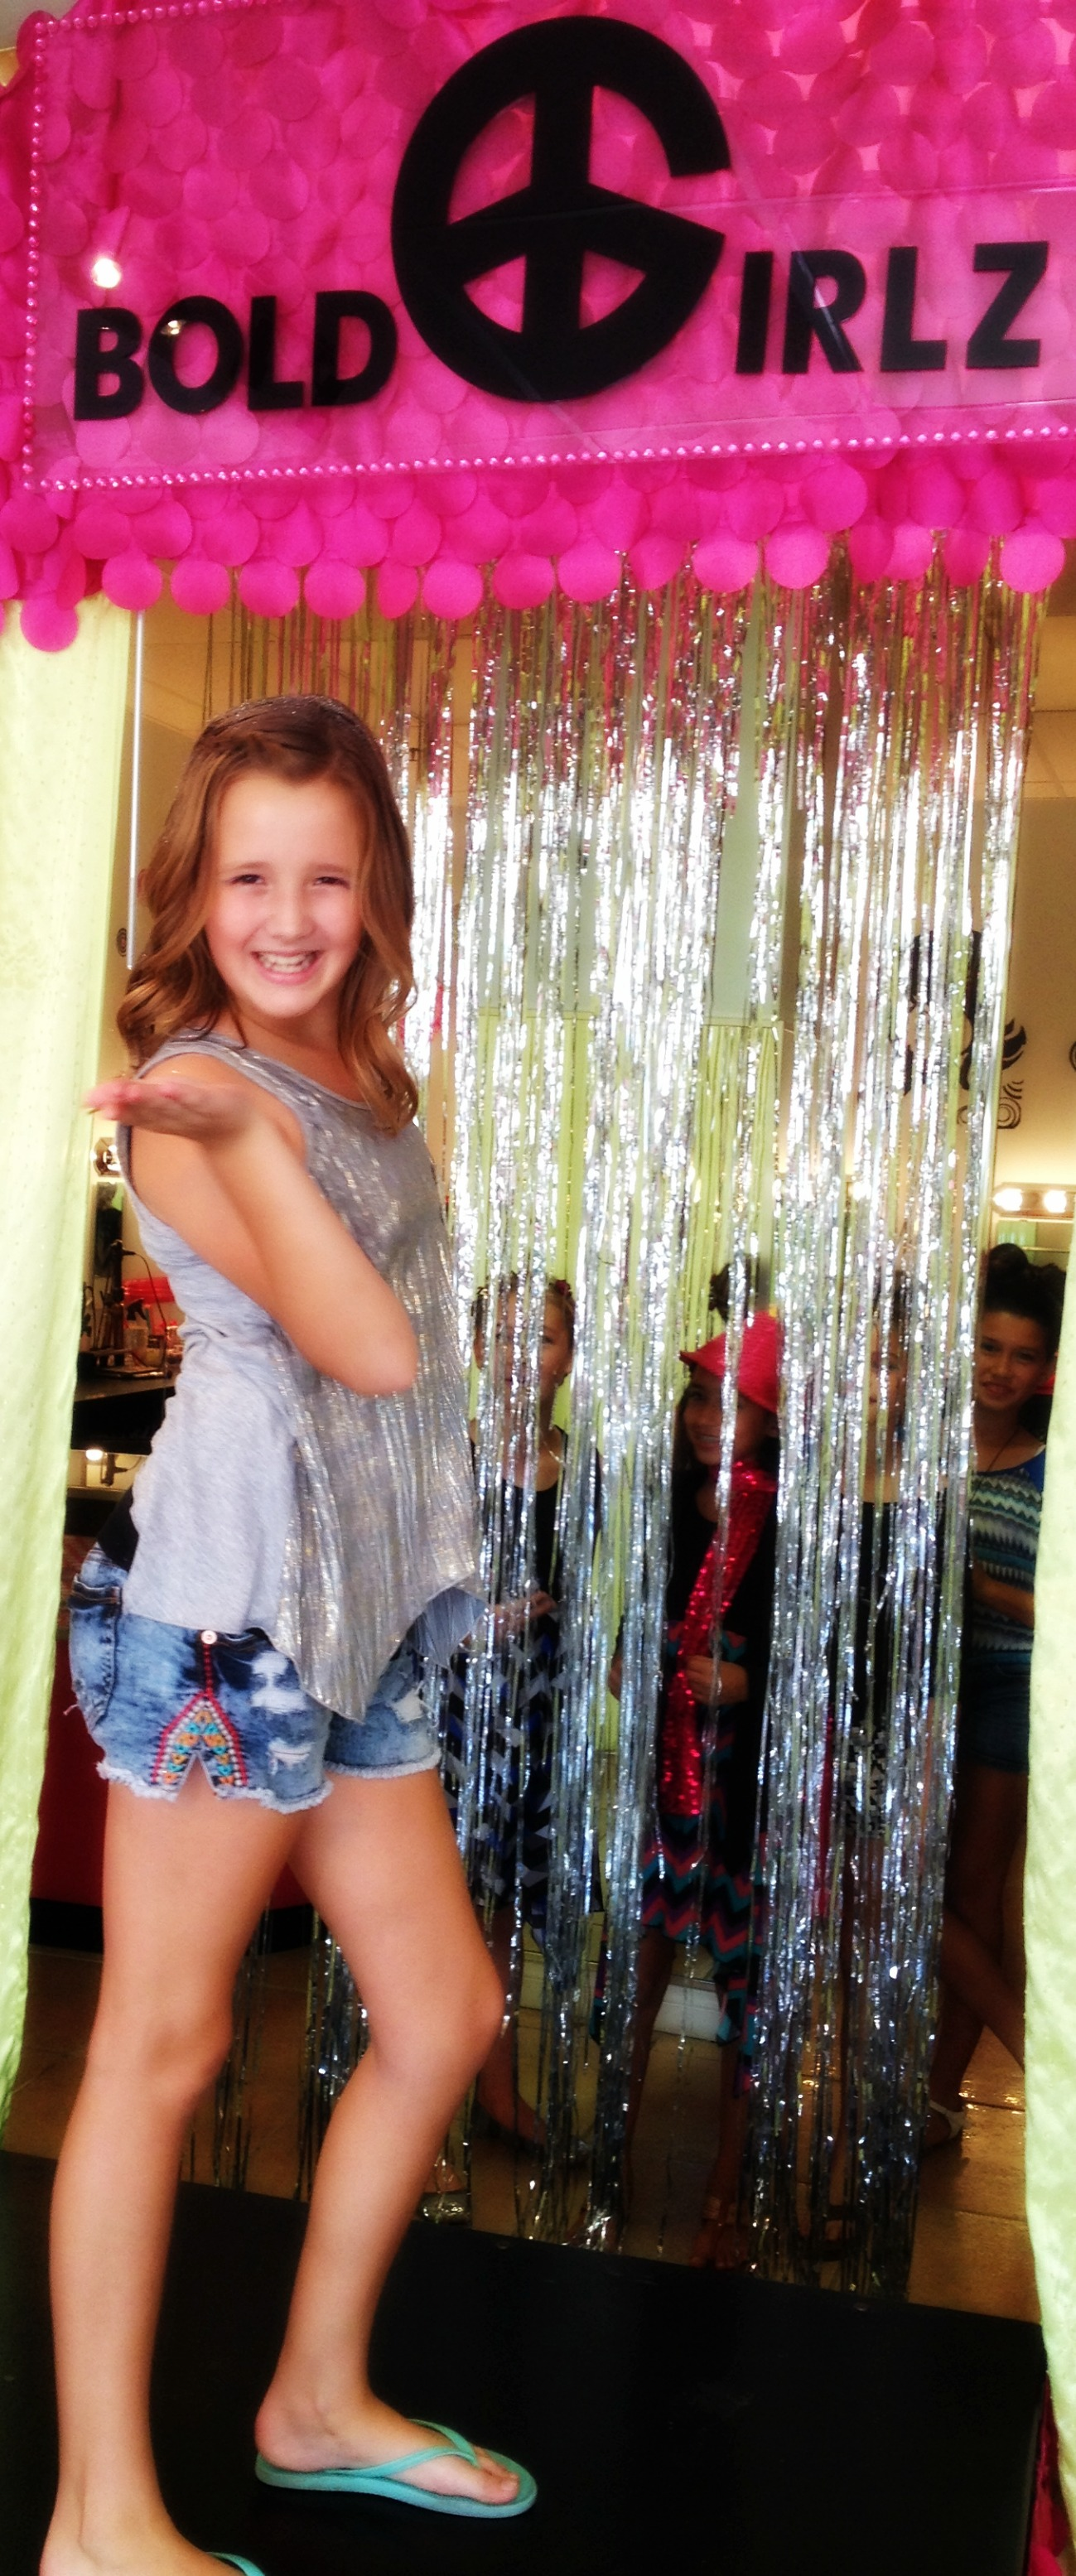 Working the runway at her birthday party at Bold Girlz.